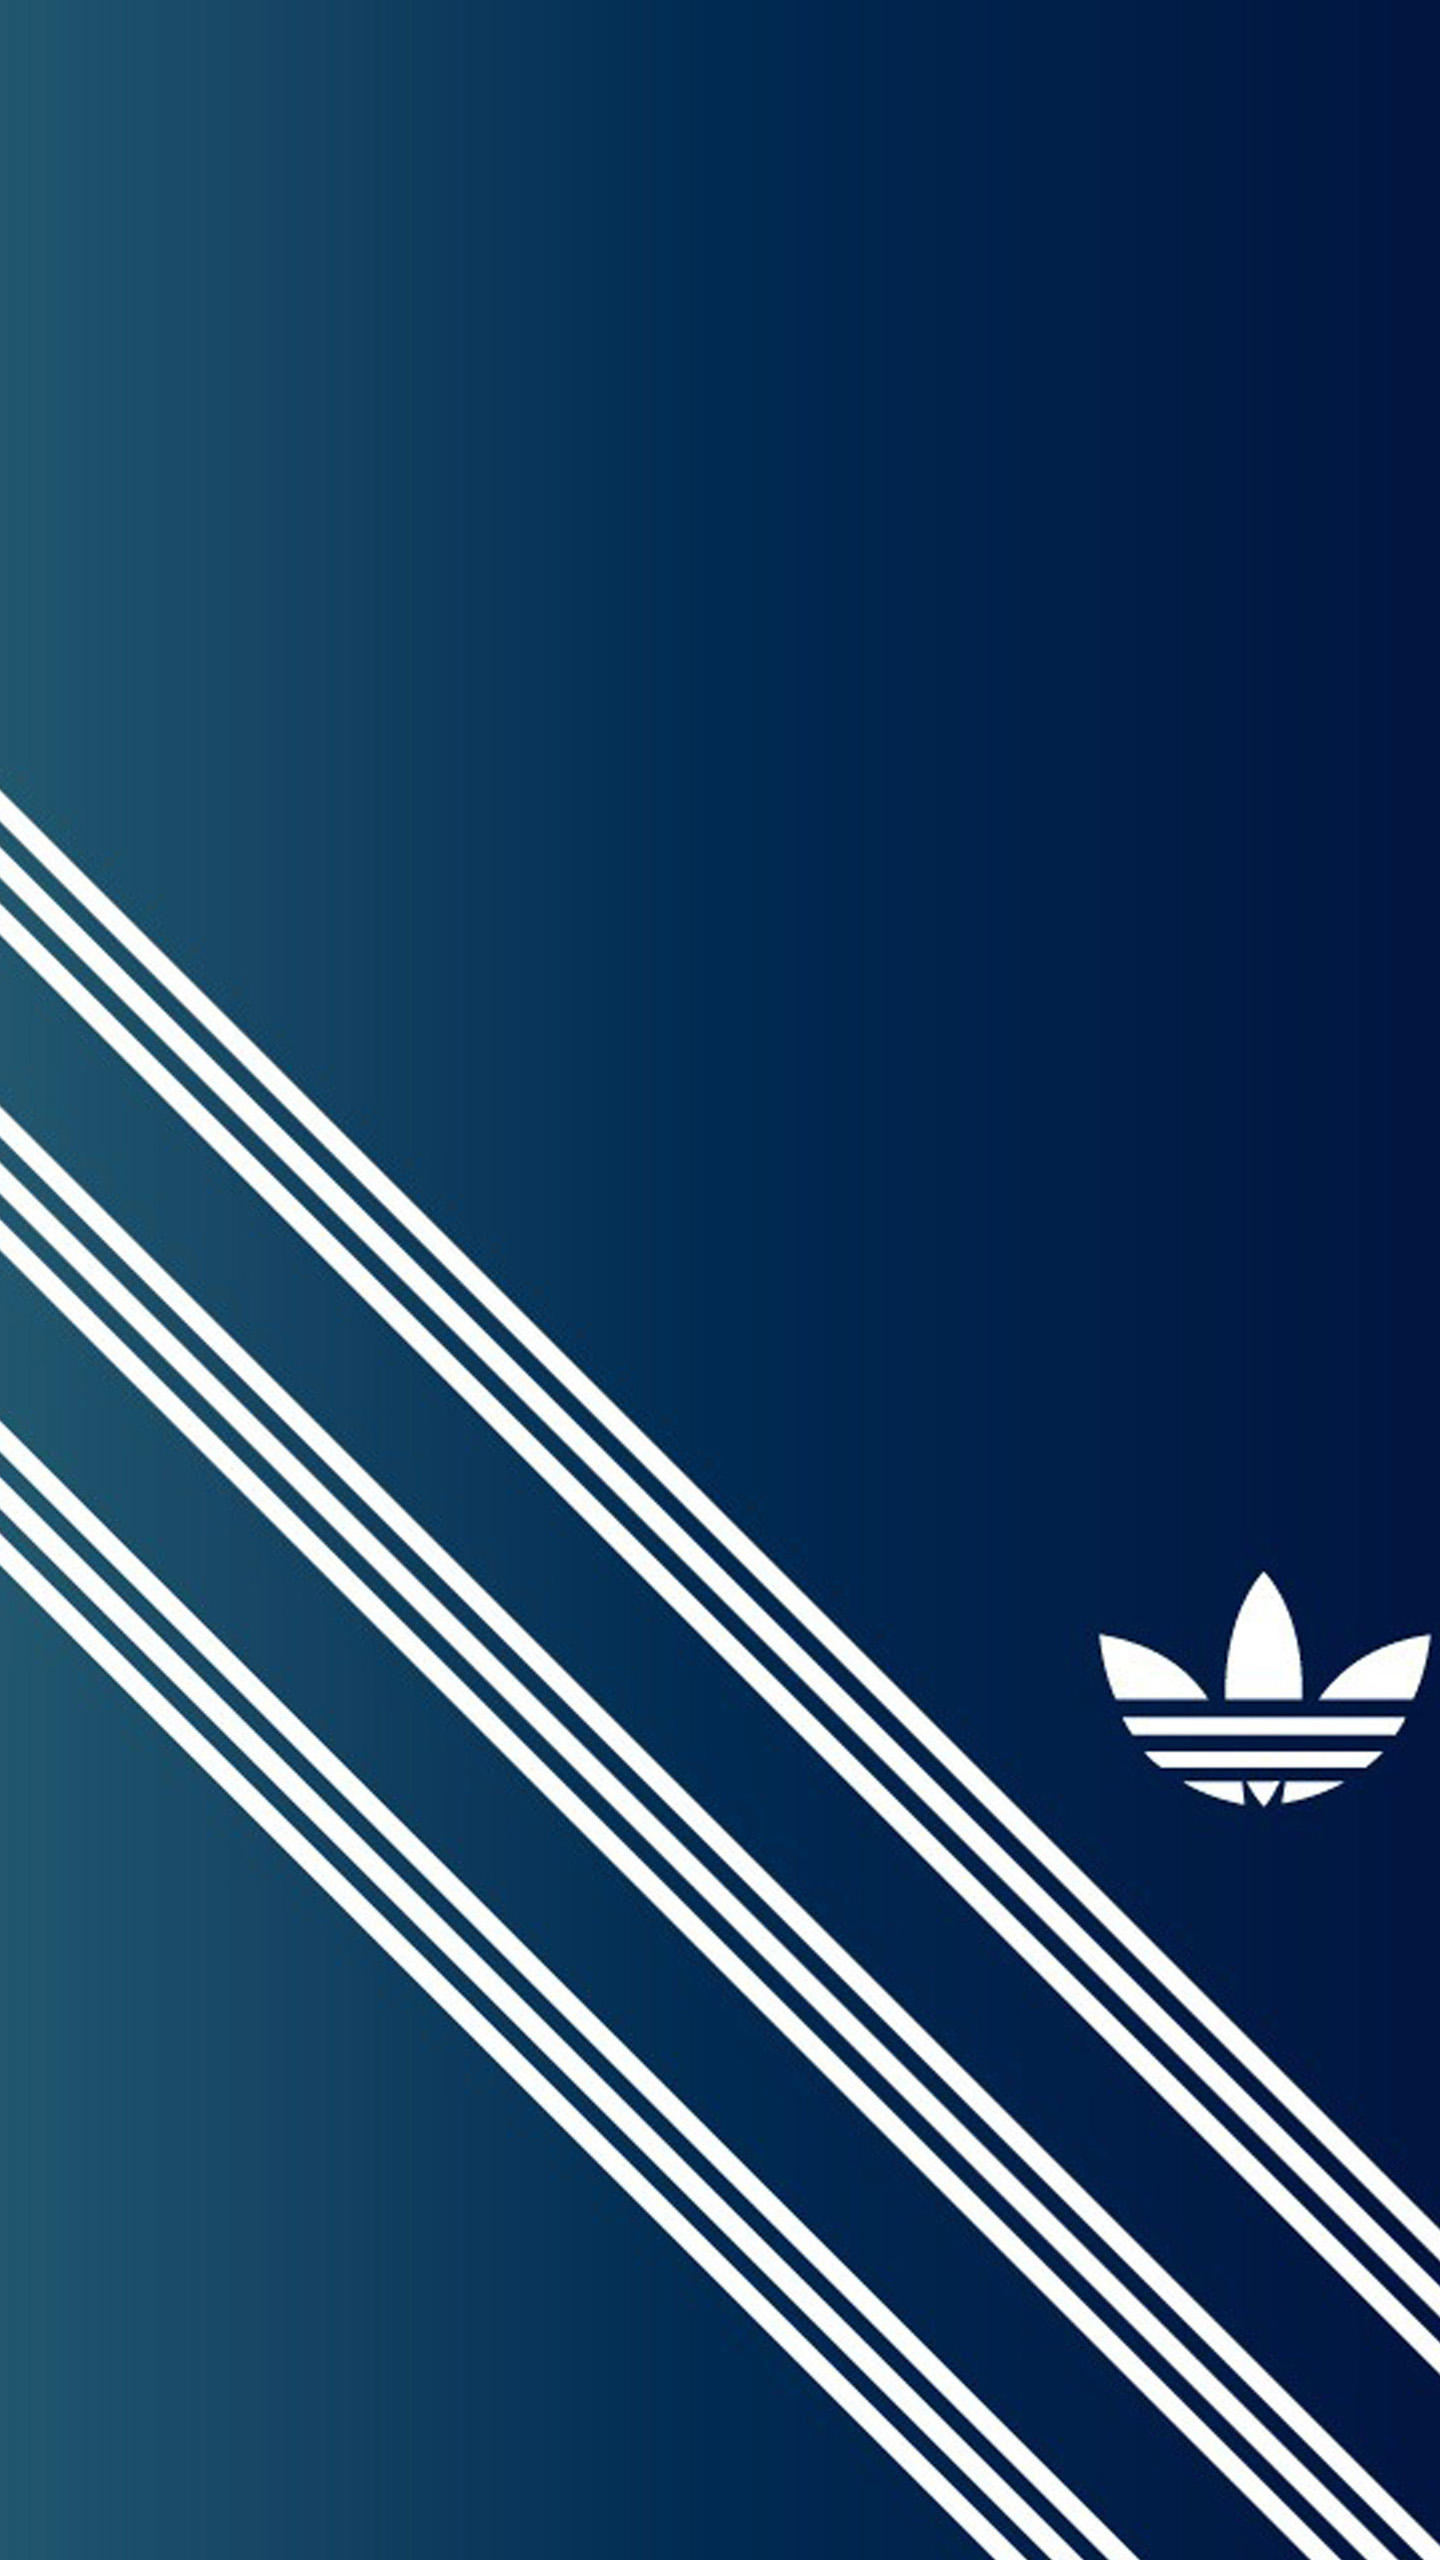 Iphone adidas wallpaper full hd pictures for Iphone 6 architecture wallpaper